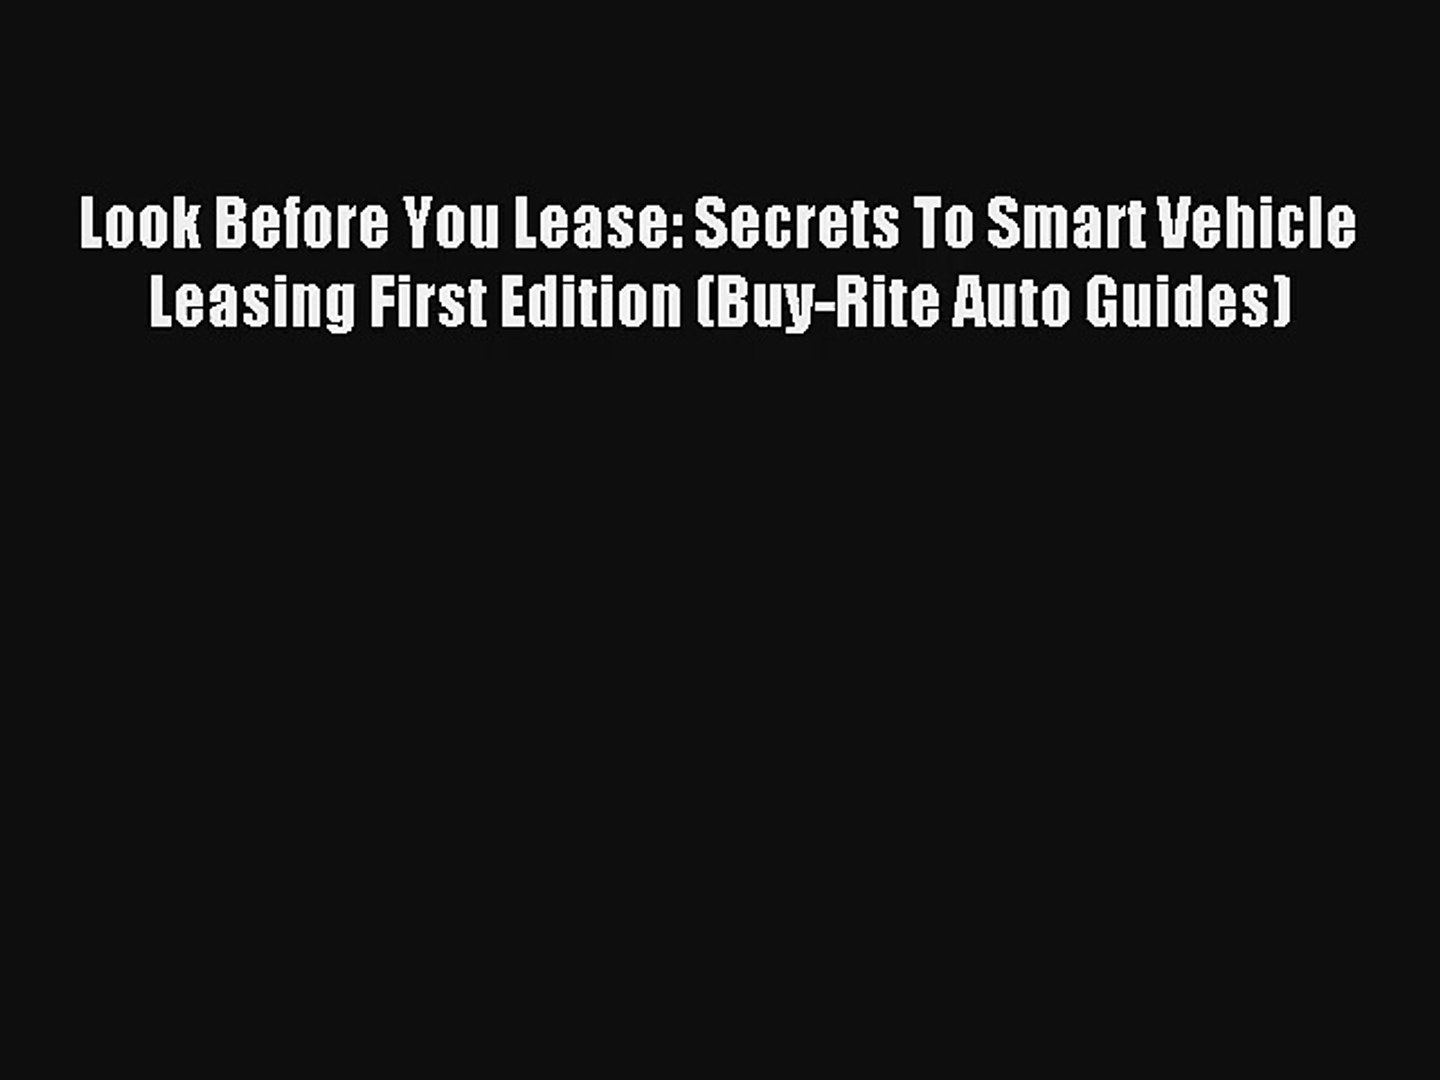 Buy Rite Auto >> Read Look Before You Lease Secrets To Smart Vehicle Leasing First Edition Buy Rite Auto Guides